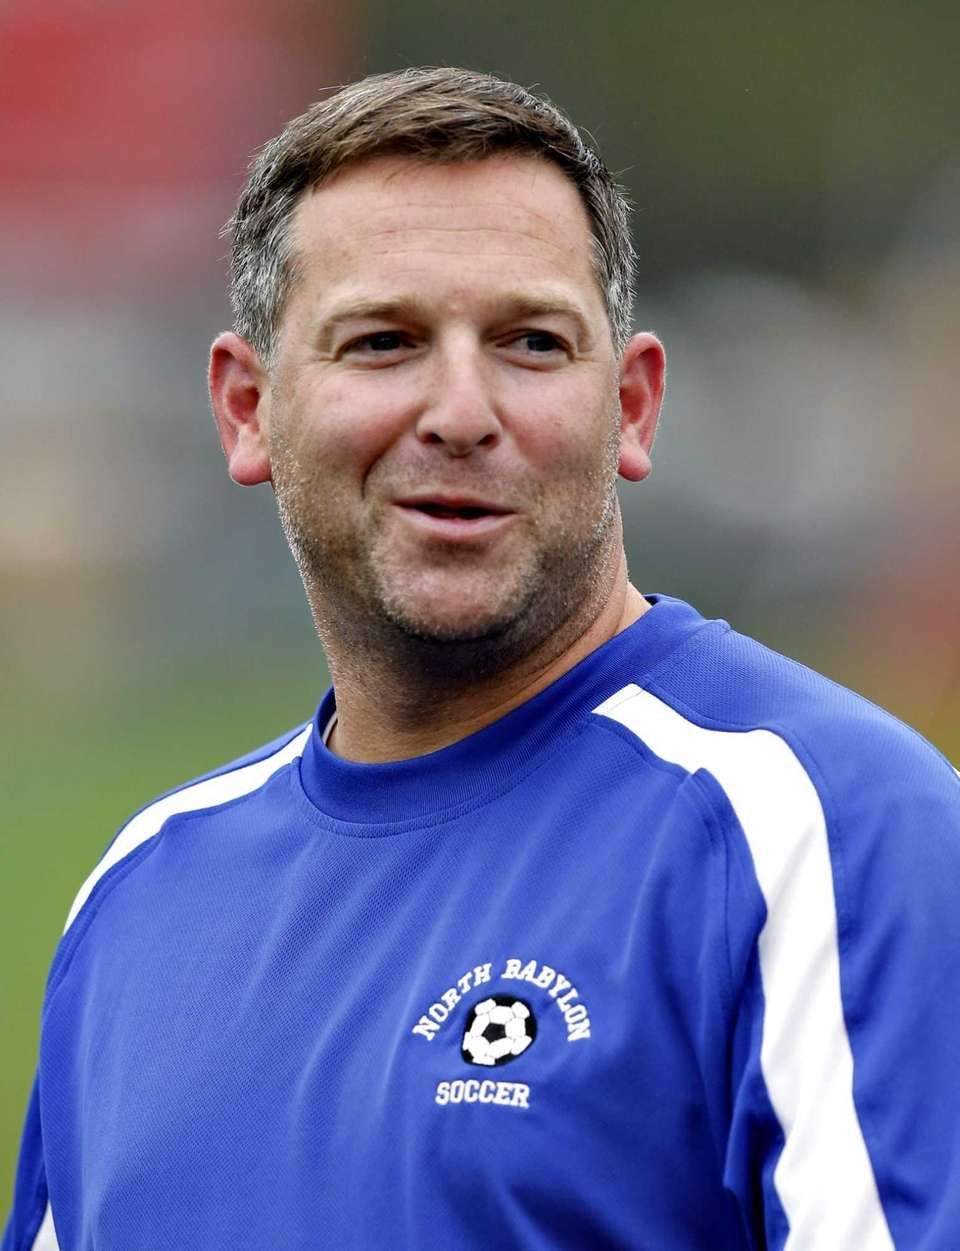 North Babylon girls varsity soccer head coach Steve